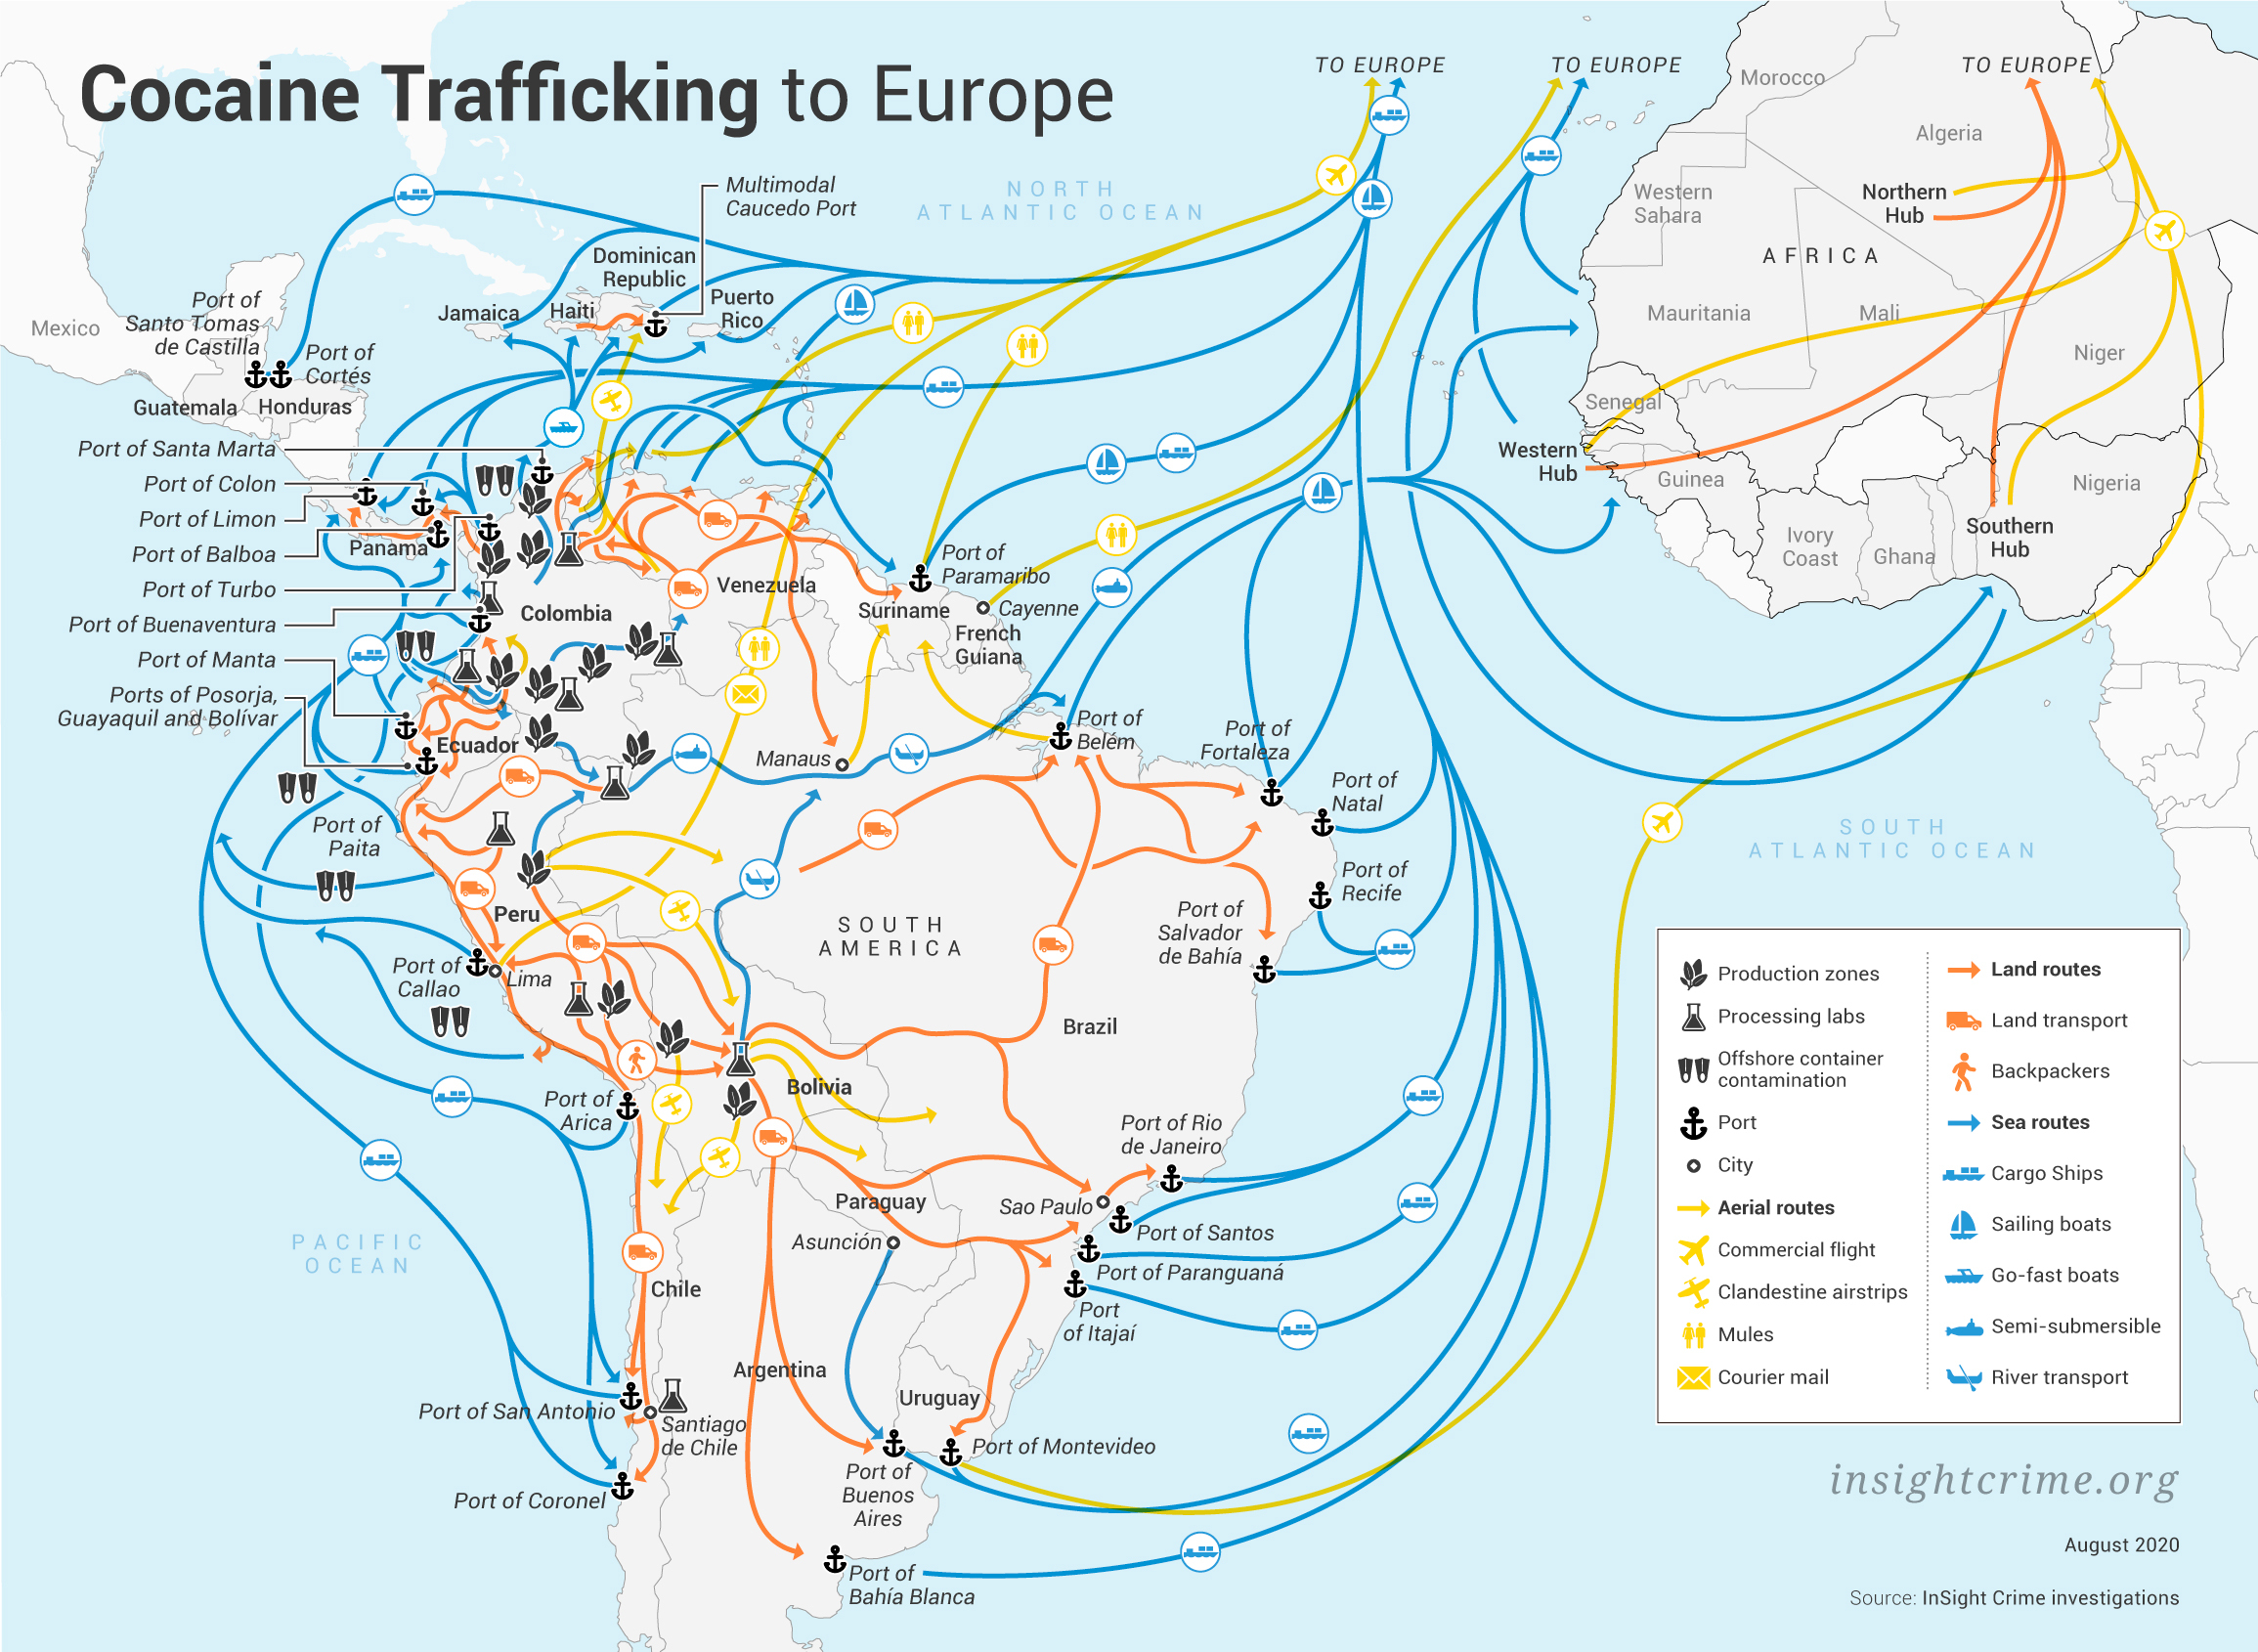 [#CRIMORG] Article: « Cocaine to Europe: An Underestimated Threat » – by @InSightCrime